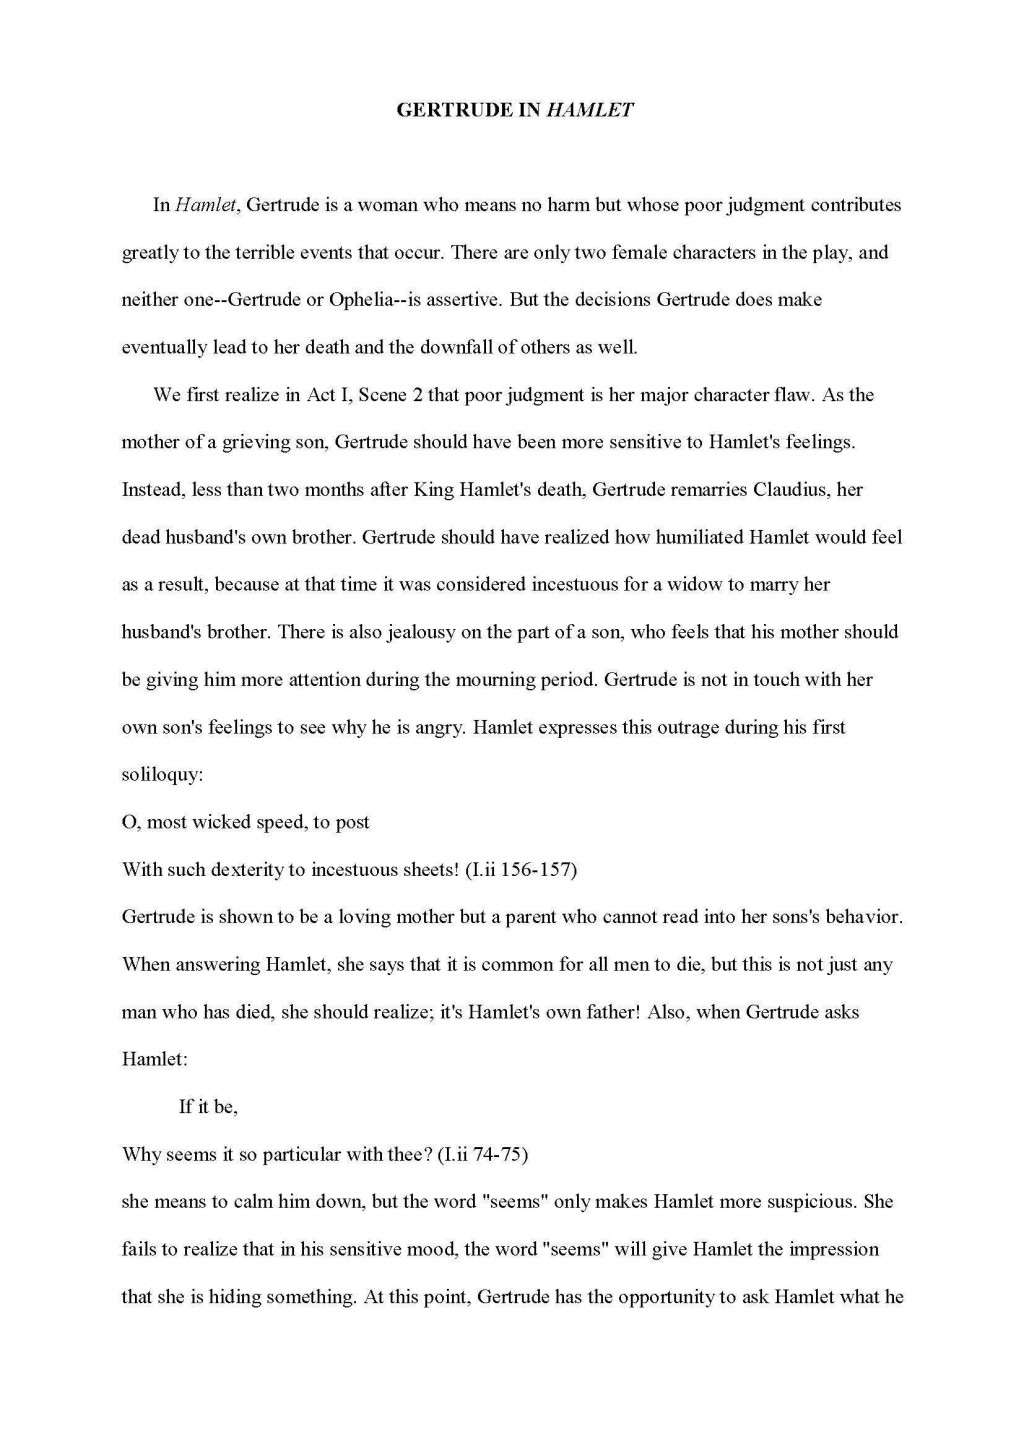 004 How To Write Biography Essay Analysis Sample Archaicawful A Life Good Personal Large